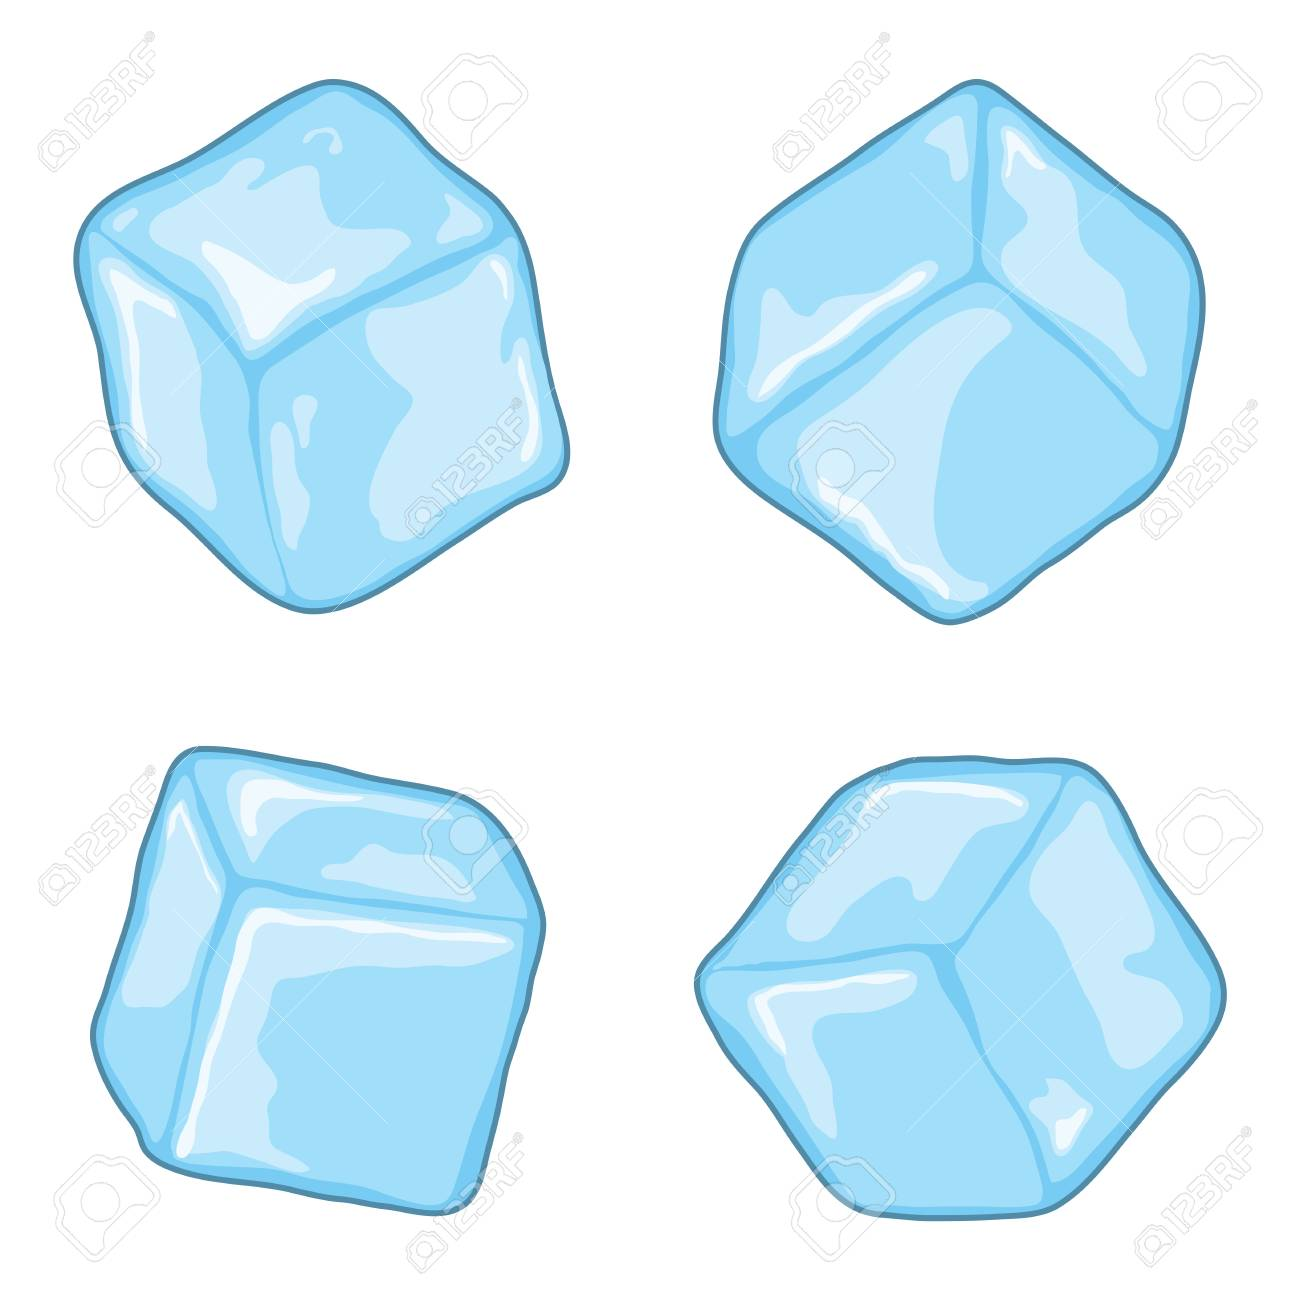 vector ice cubes isolated on white background blue transparent royalty free cliparts vectors and stock illustration image 93569995 vector ice cubes isolated on white background blue transparent